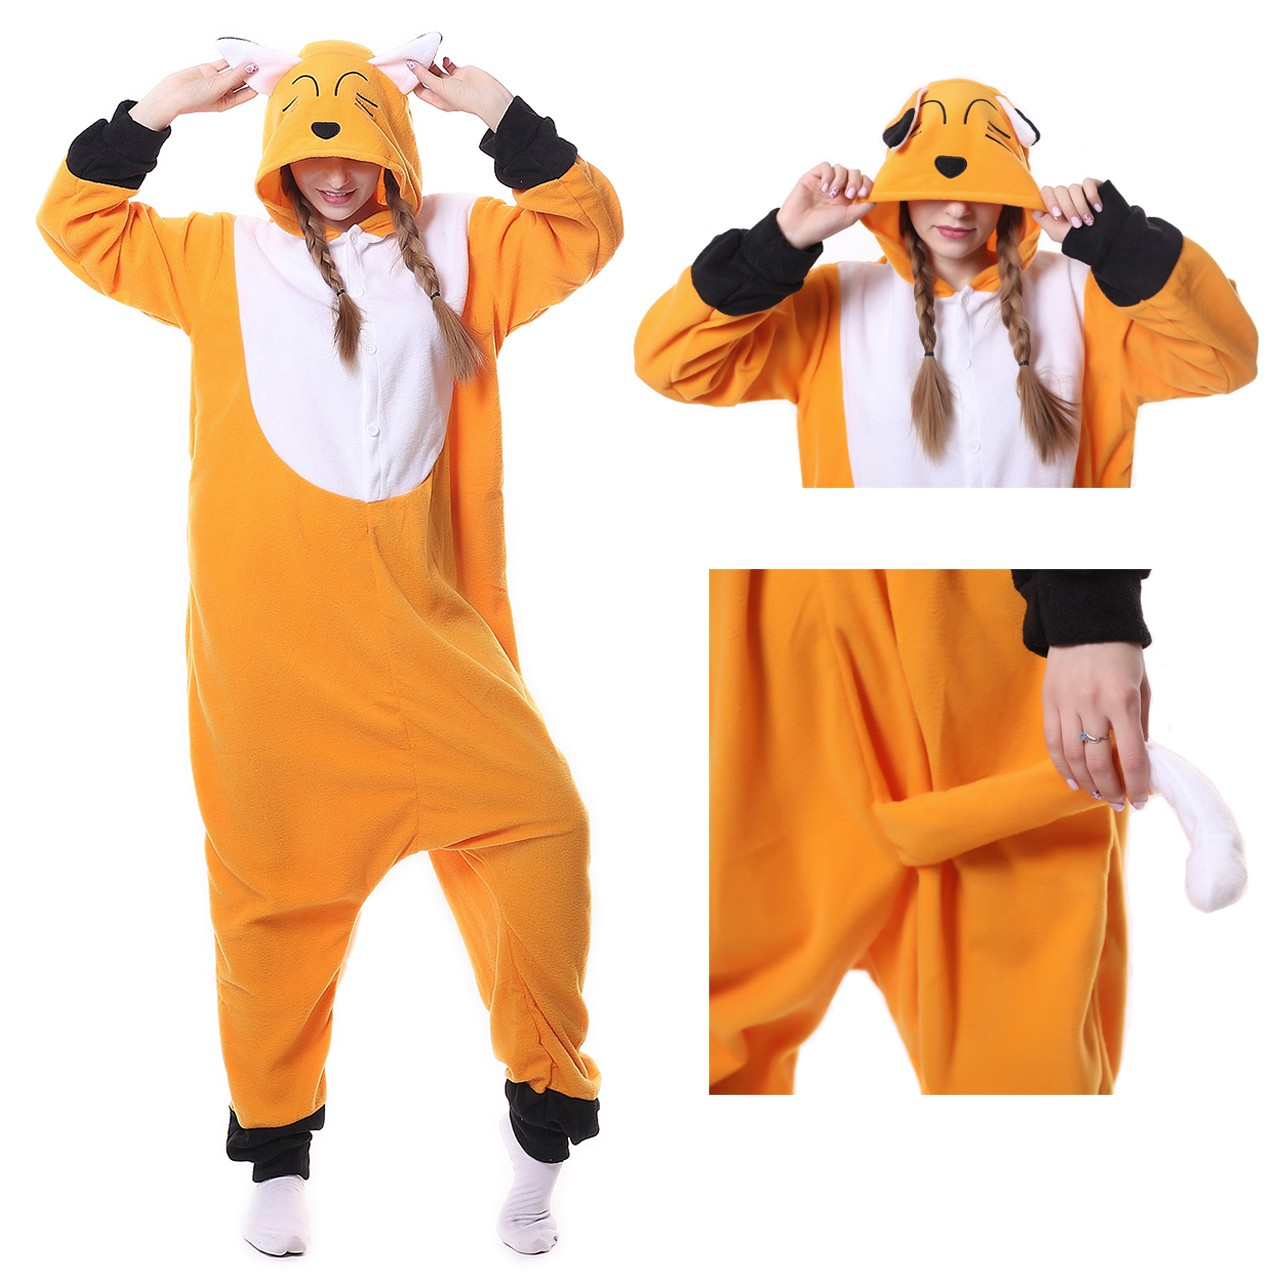 b5862d0ce6 Japanese Red Fox Onesie Kigurumi Animal Pajama Women   Men Halloween  Carnival Costumes